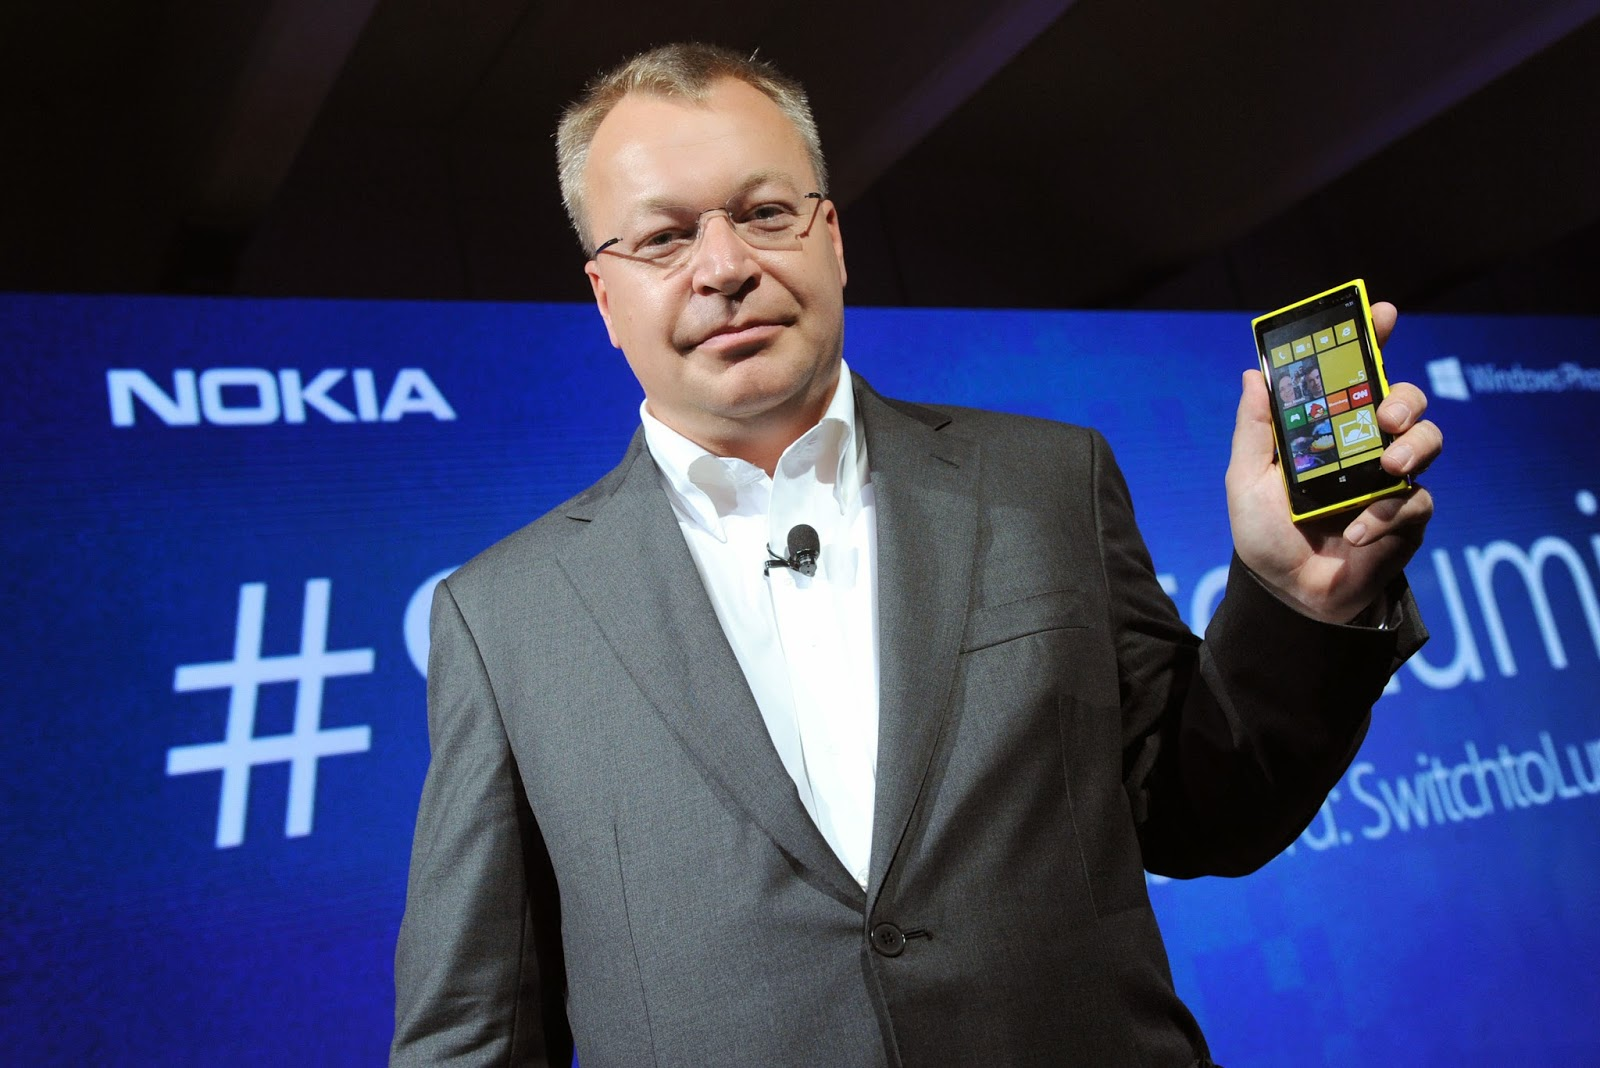 Stephen Elop, Microsoft, Microsoft and Nokia, Nokia, CEO of Nokia, Windows IT Pro, mobile,